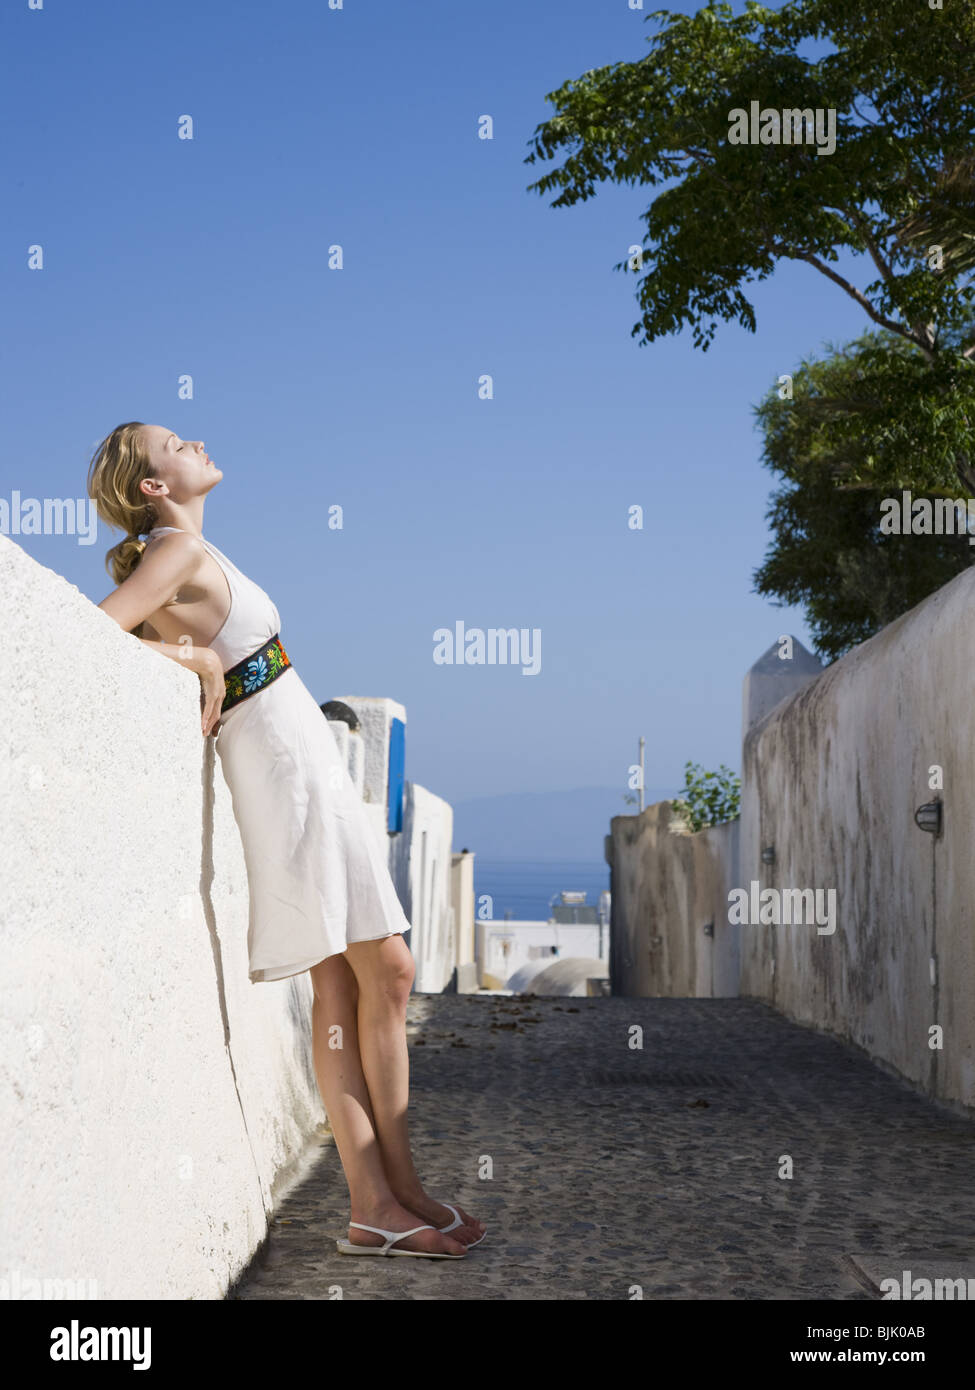 Woman leaning on wall outdoors smiling - Stock Image